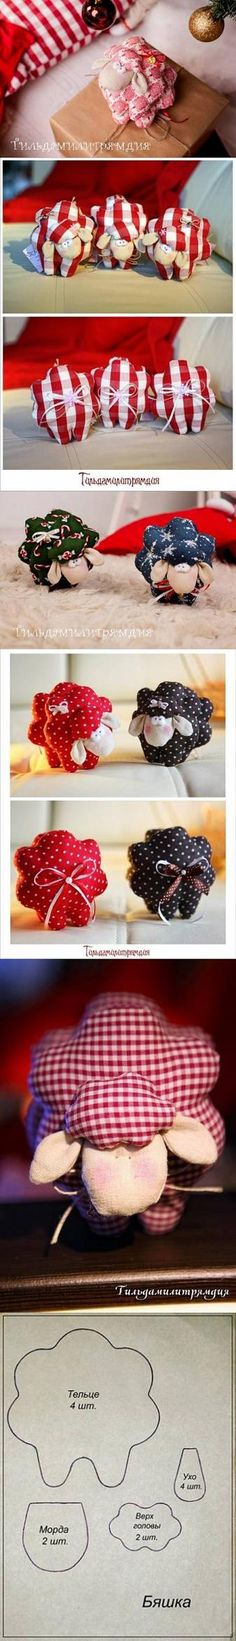 DIY Cute Fabric Lamb DIY Projects | UsefulDIY.com